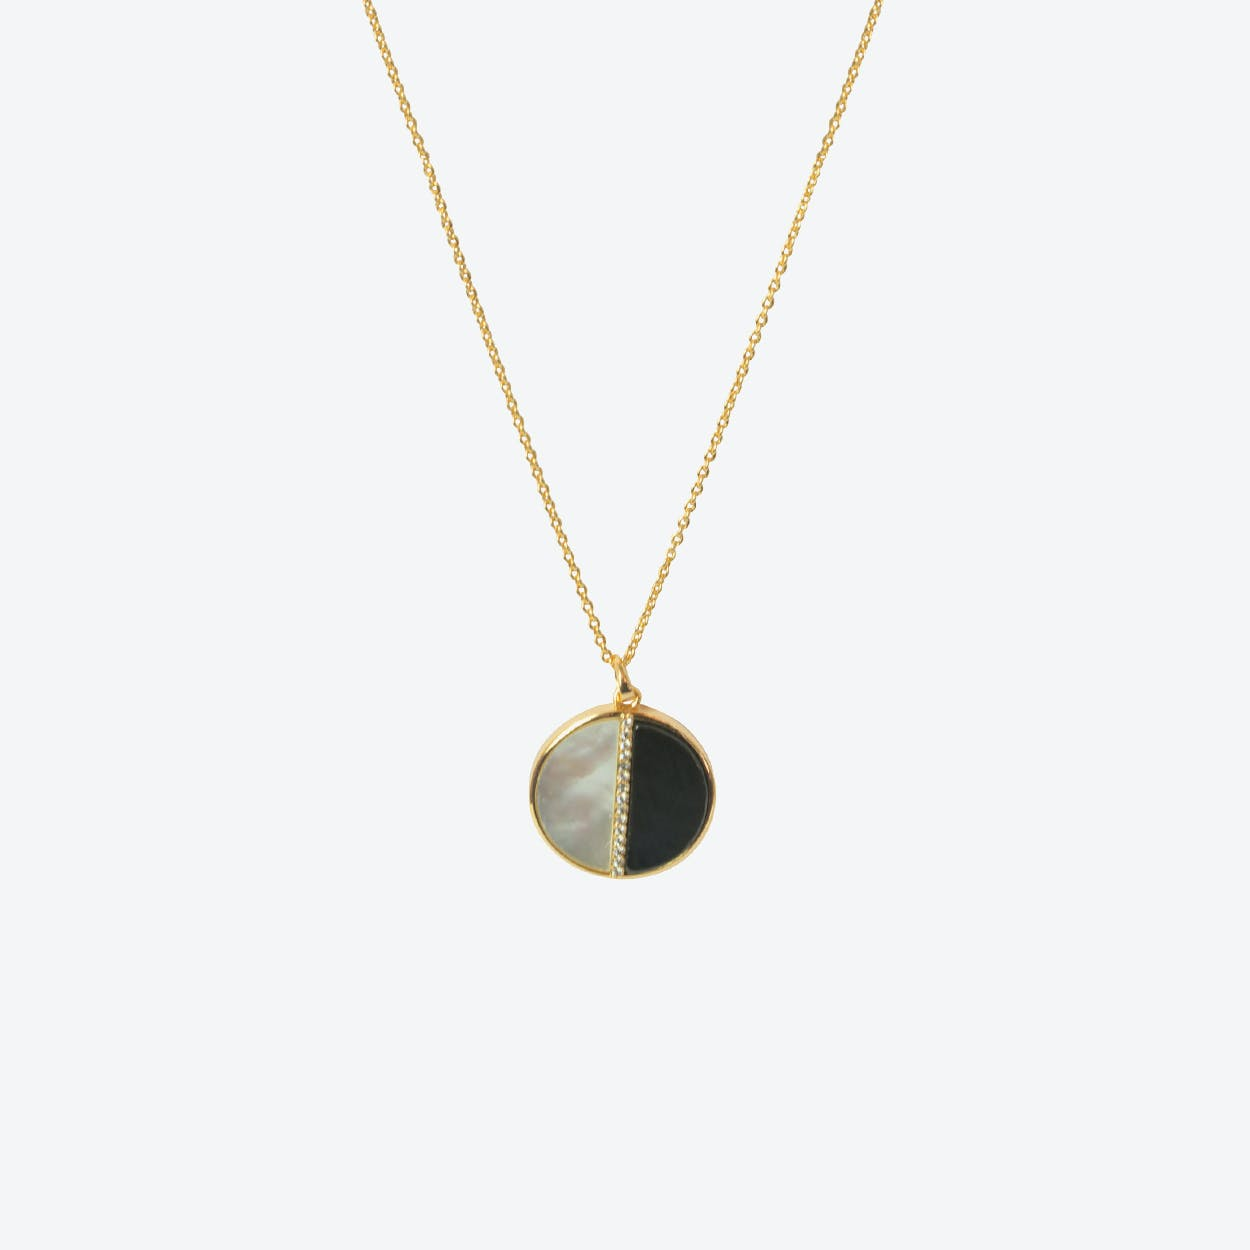 18k Gold Onyx Circle Necklace